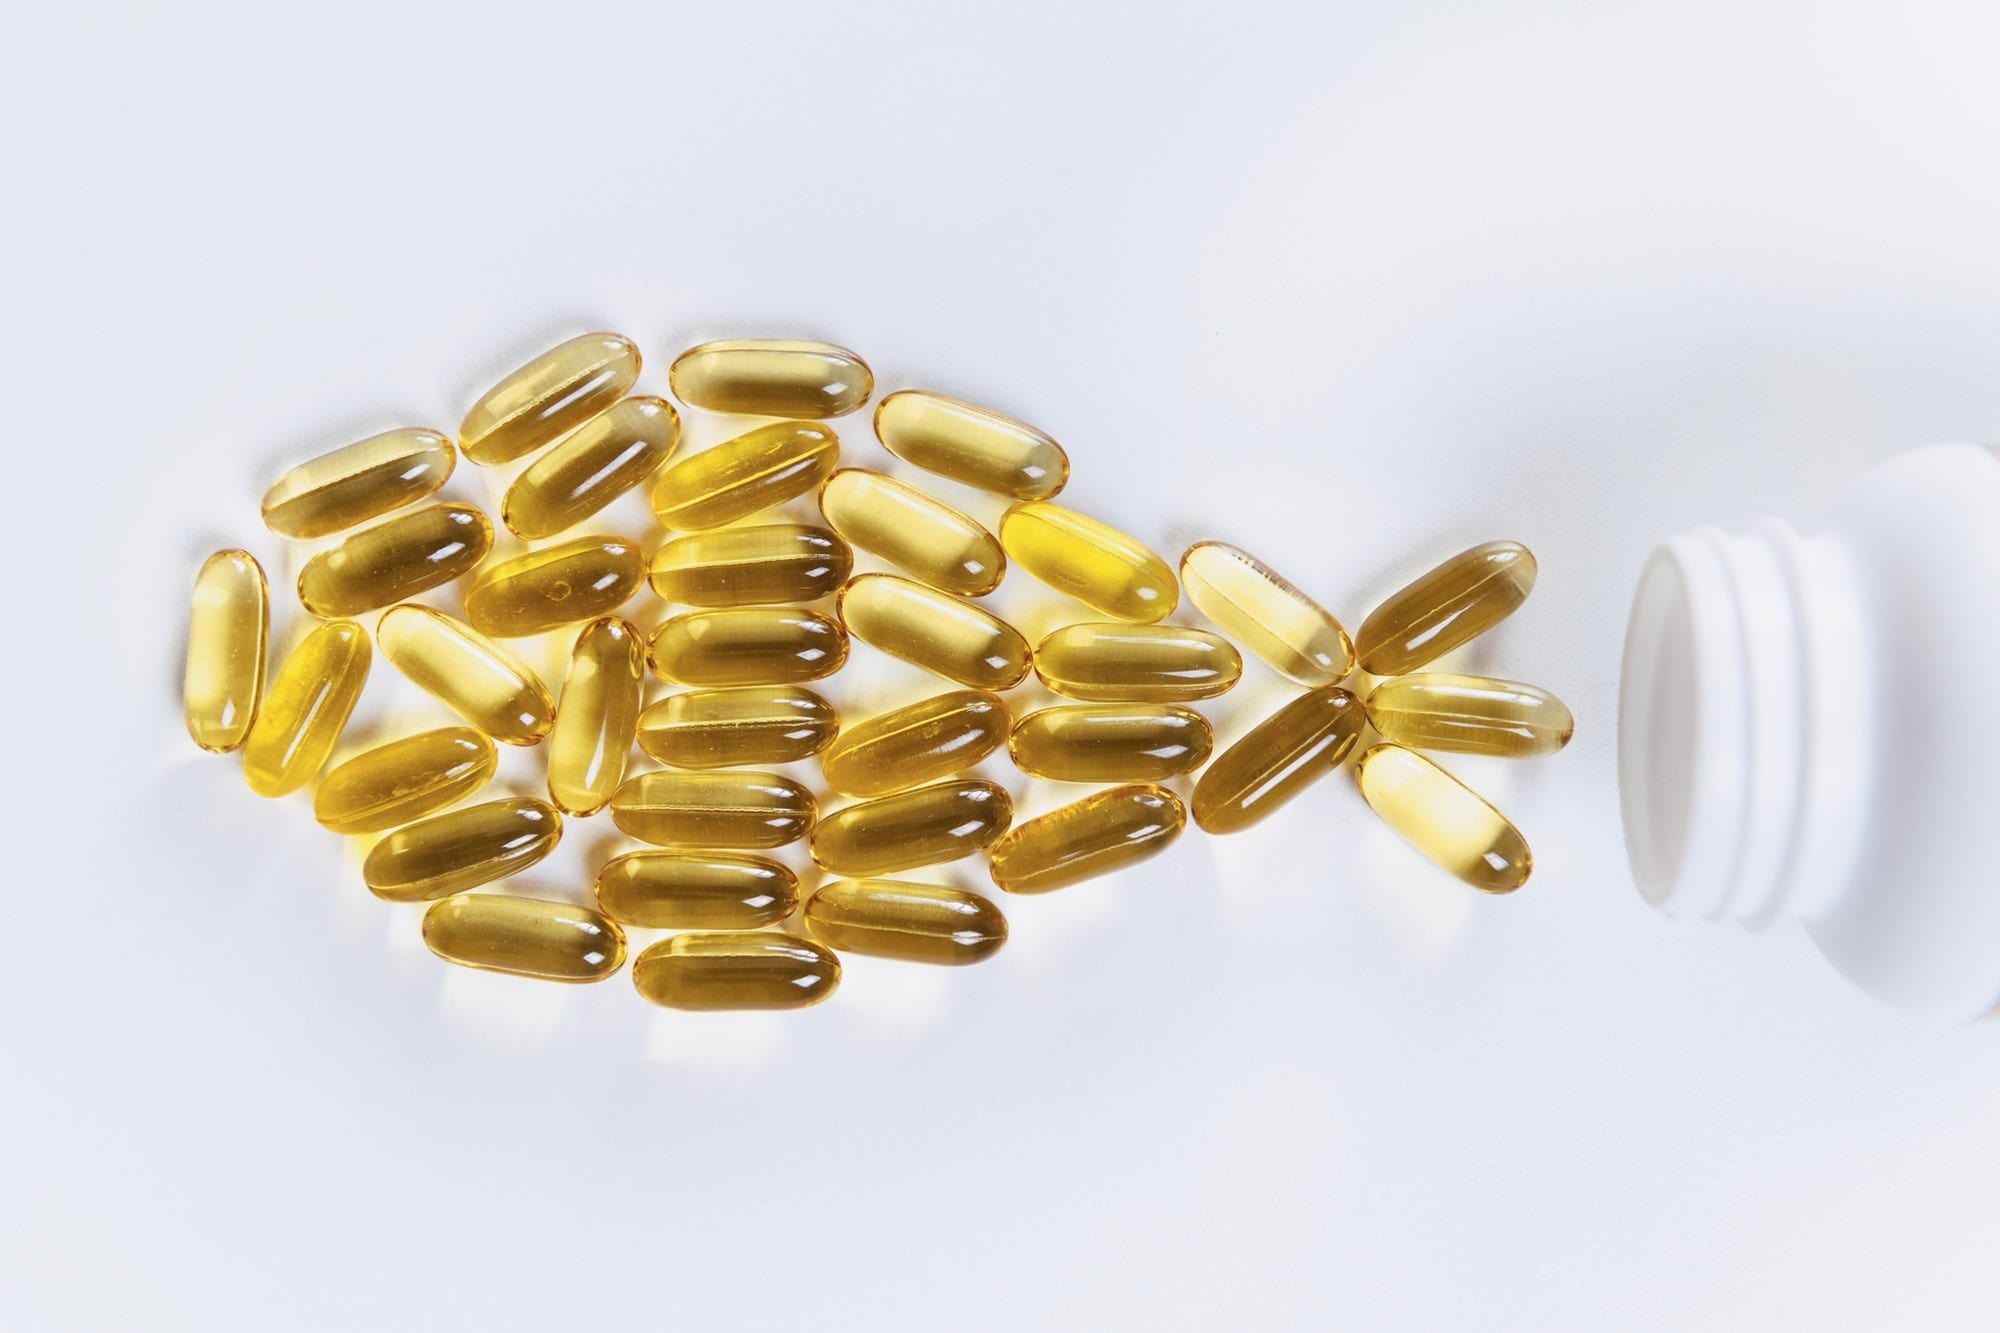 fish oil omega-3 benefits Archives - Elements of Health Care